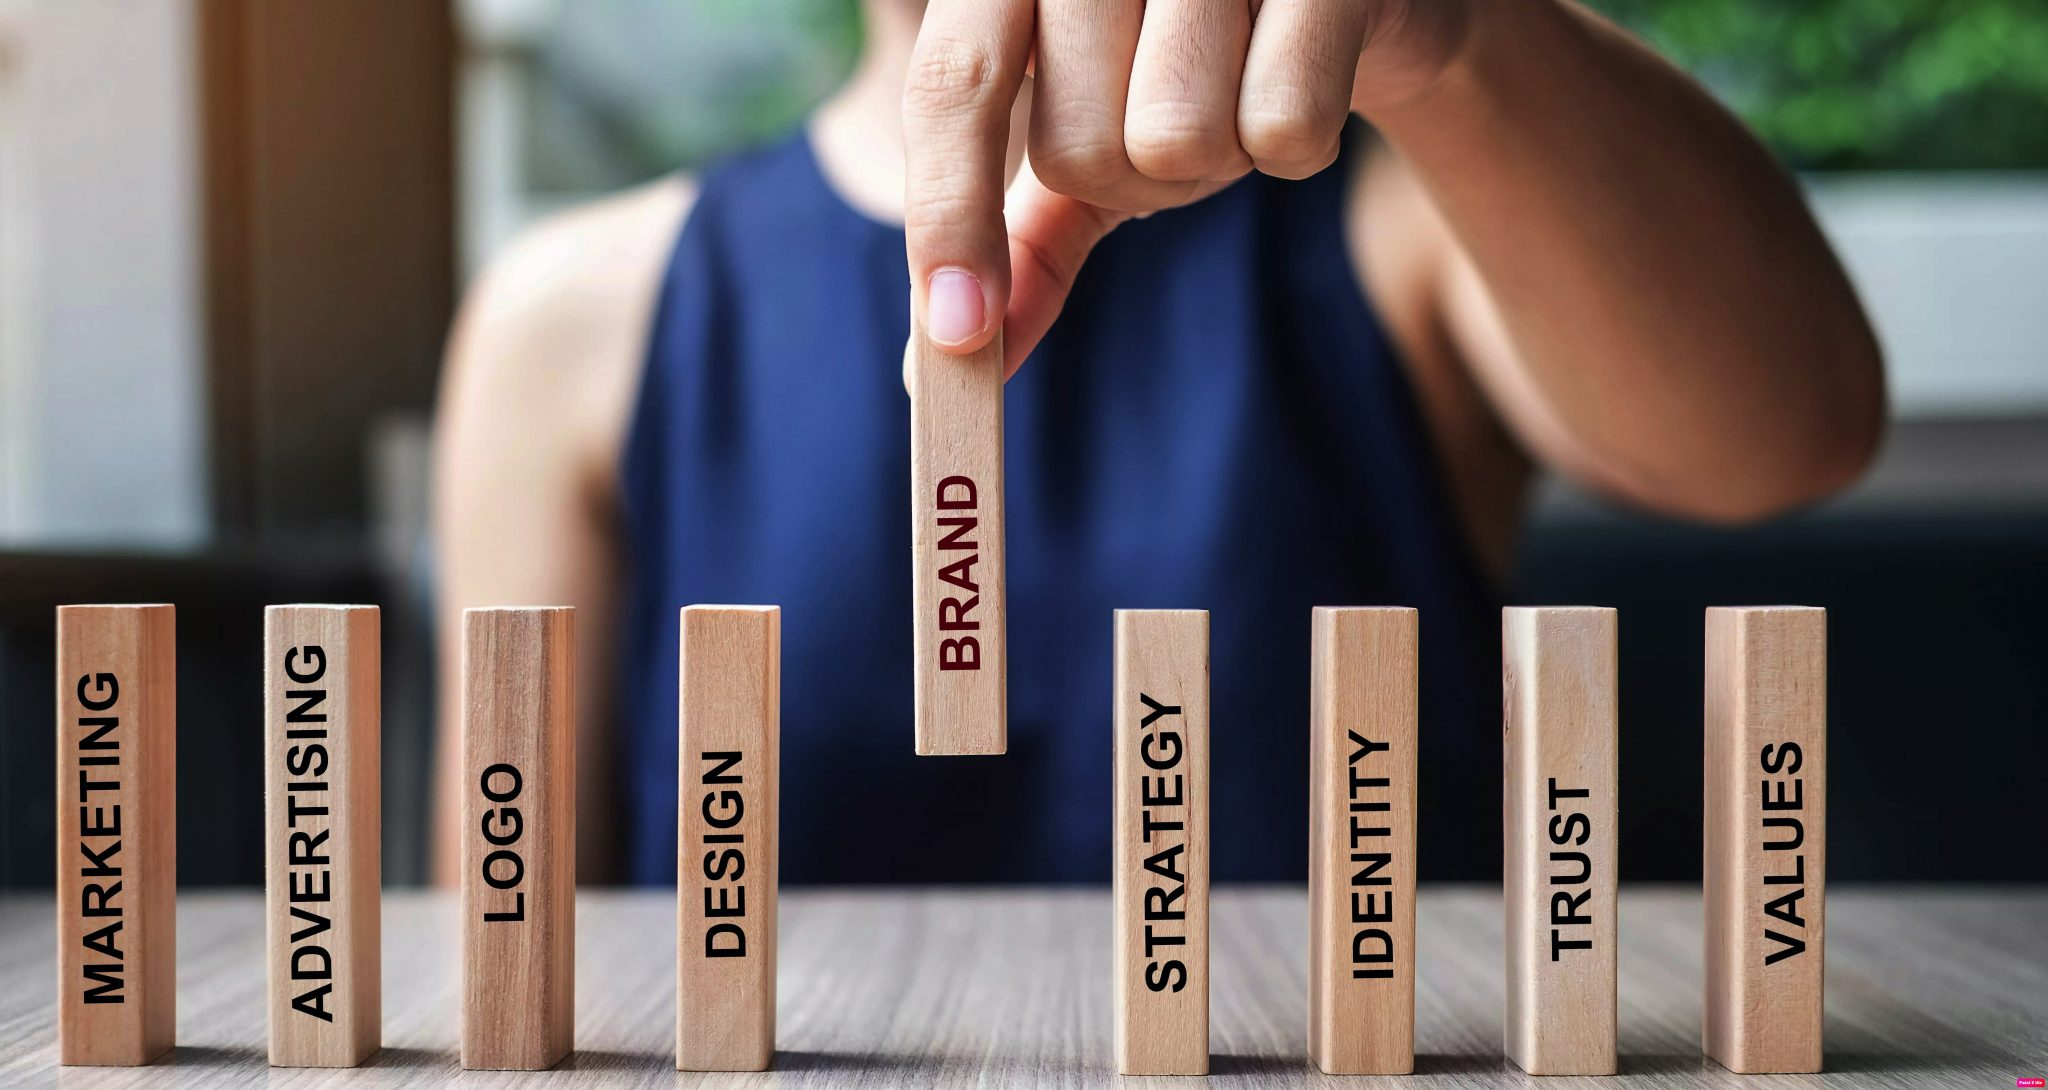 businesswoman2-hand-placing-or-pulling-wooden-dominoes-with-brand-text-and-marketing-advertising-logo_t20_YwXeLX